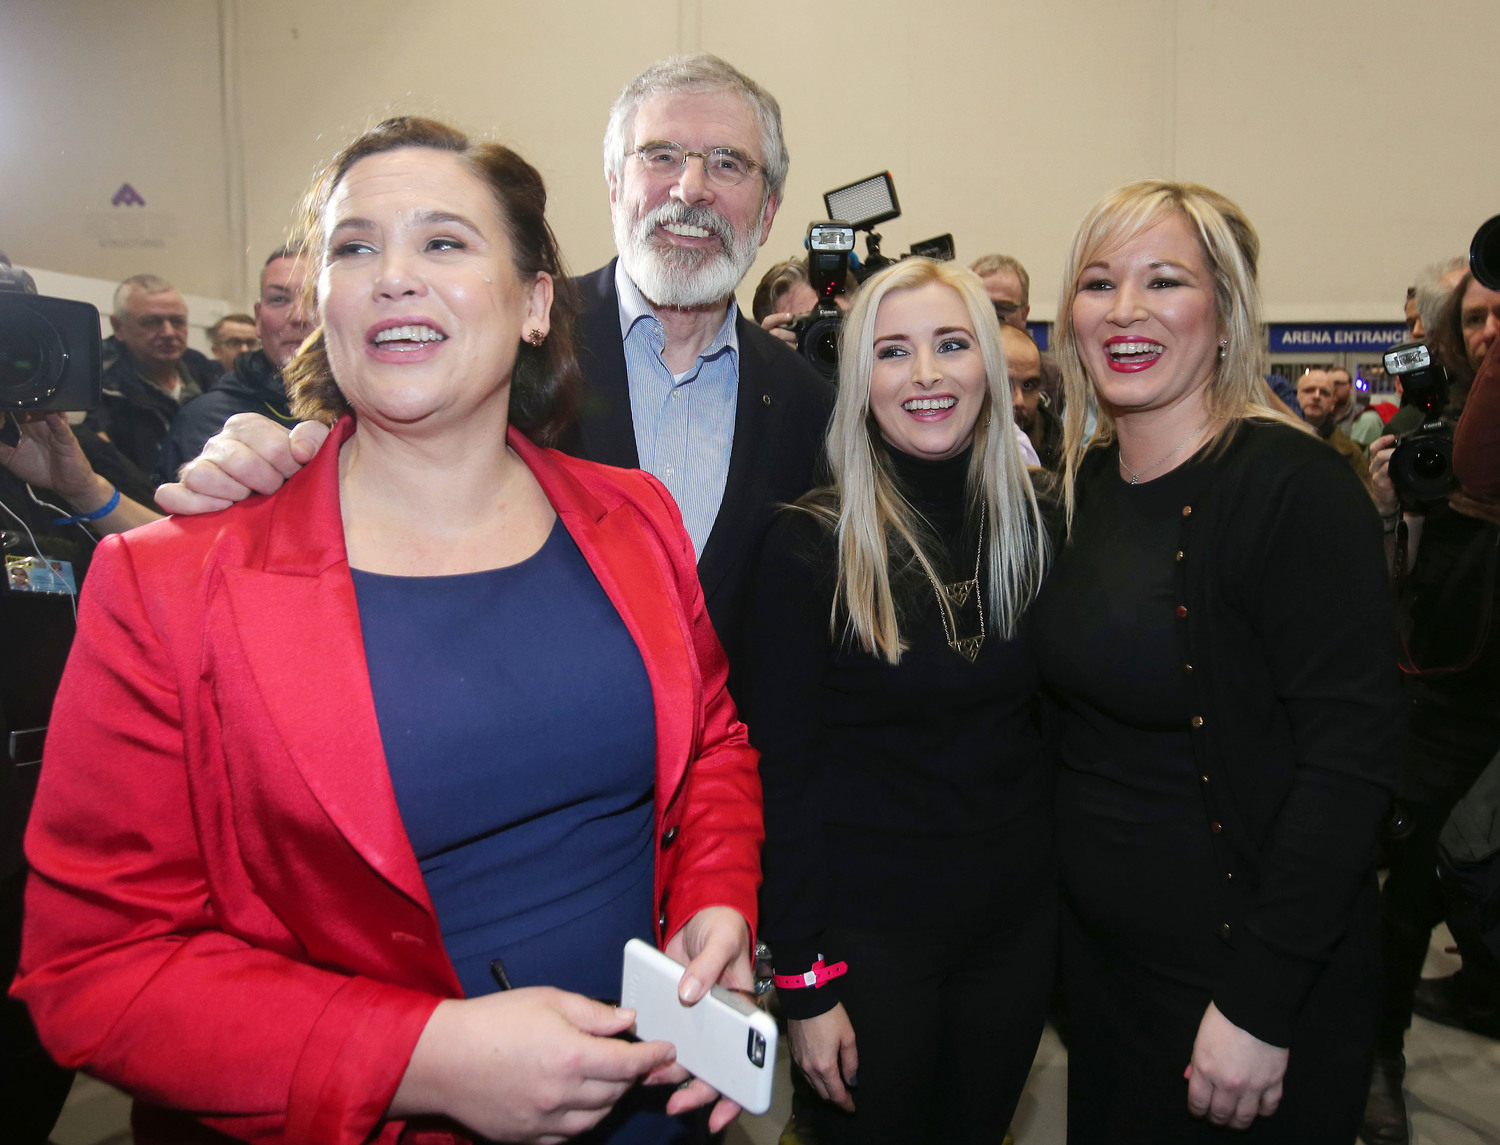 Sinn Féin President Gerry Adams, with party colleagues including deputy leader Mary Lou McDonald & Nothern leader Michelle O'Neill